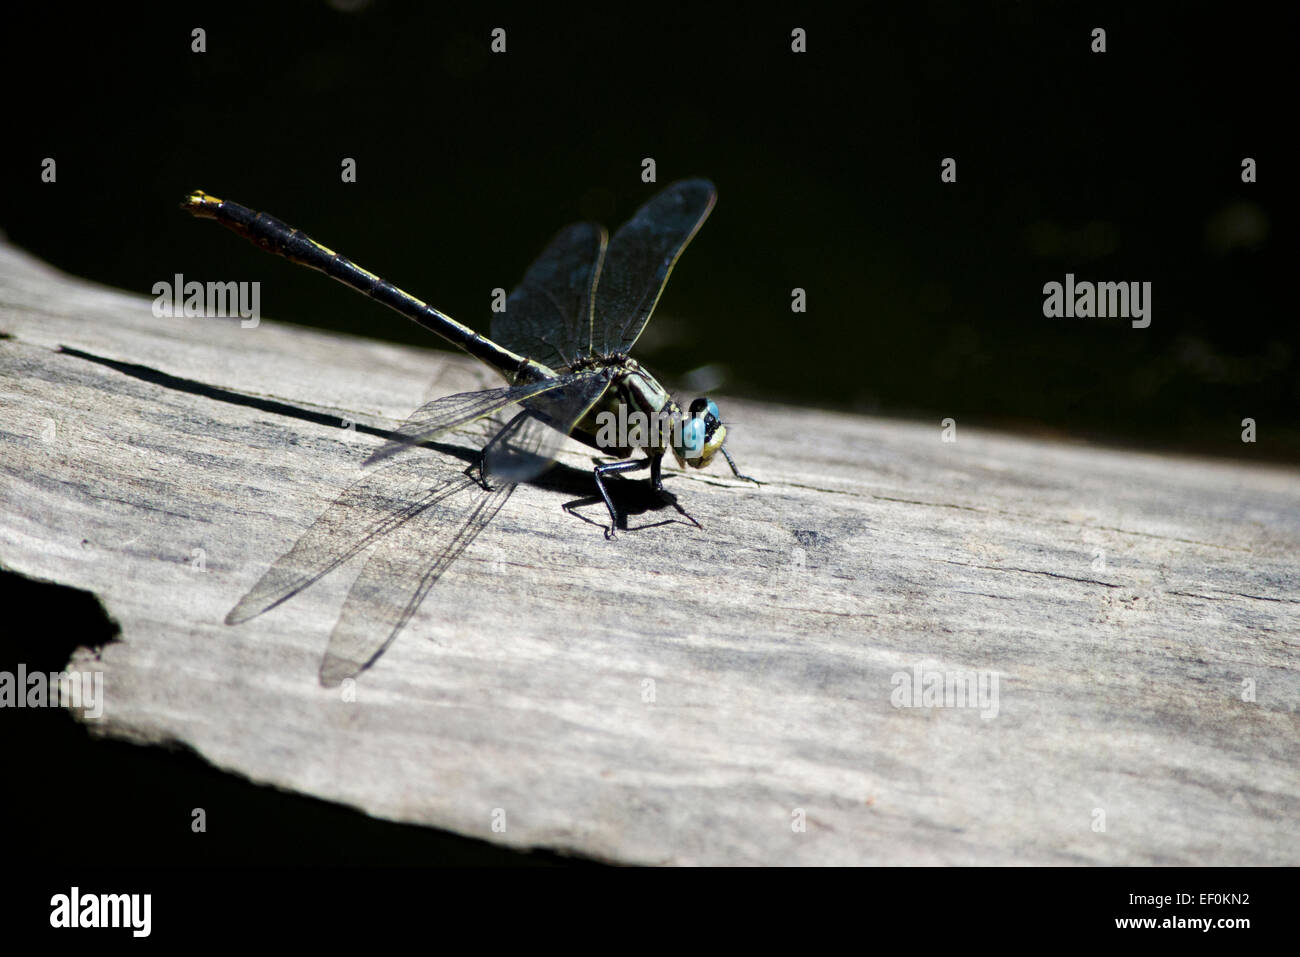 Dragonfly with blue eyes and transparent wings resting on a log. - Stock Image